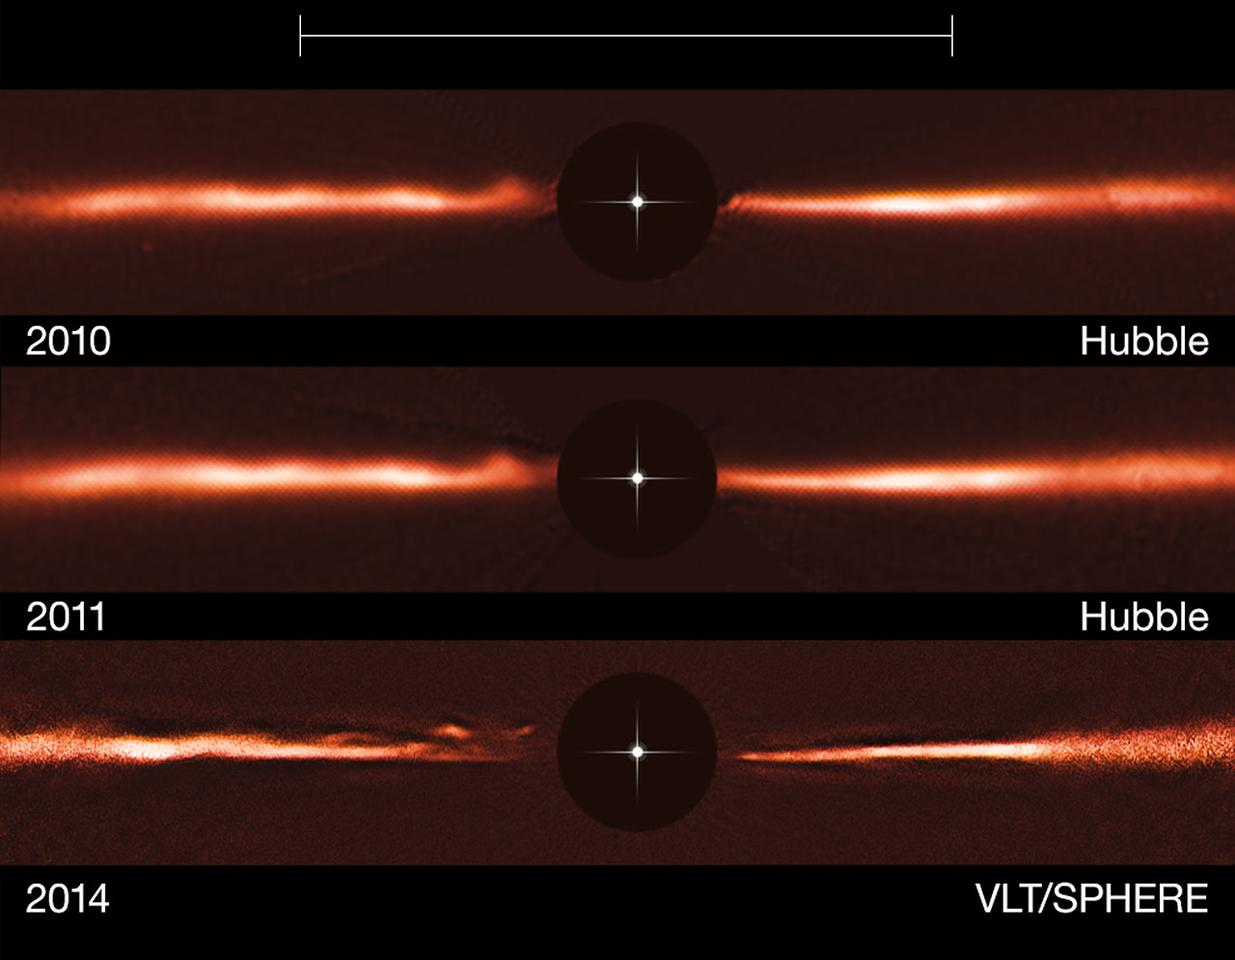 The scientists say that the objects are moving too quickly to resemble conventional disc features that might be pulled away by nearby objects, such as planets orbiting the star